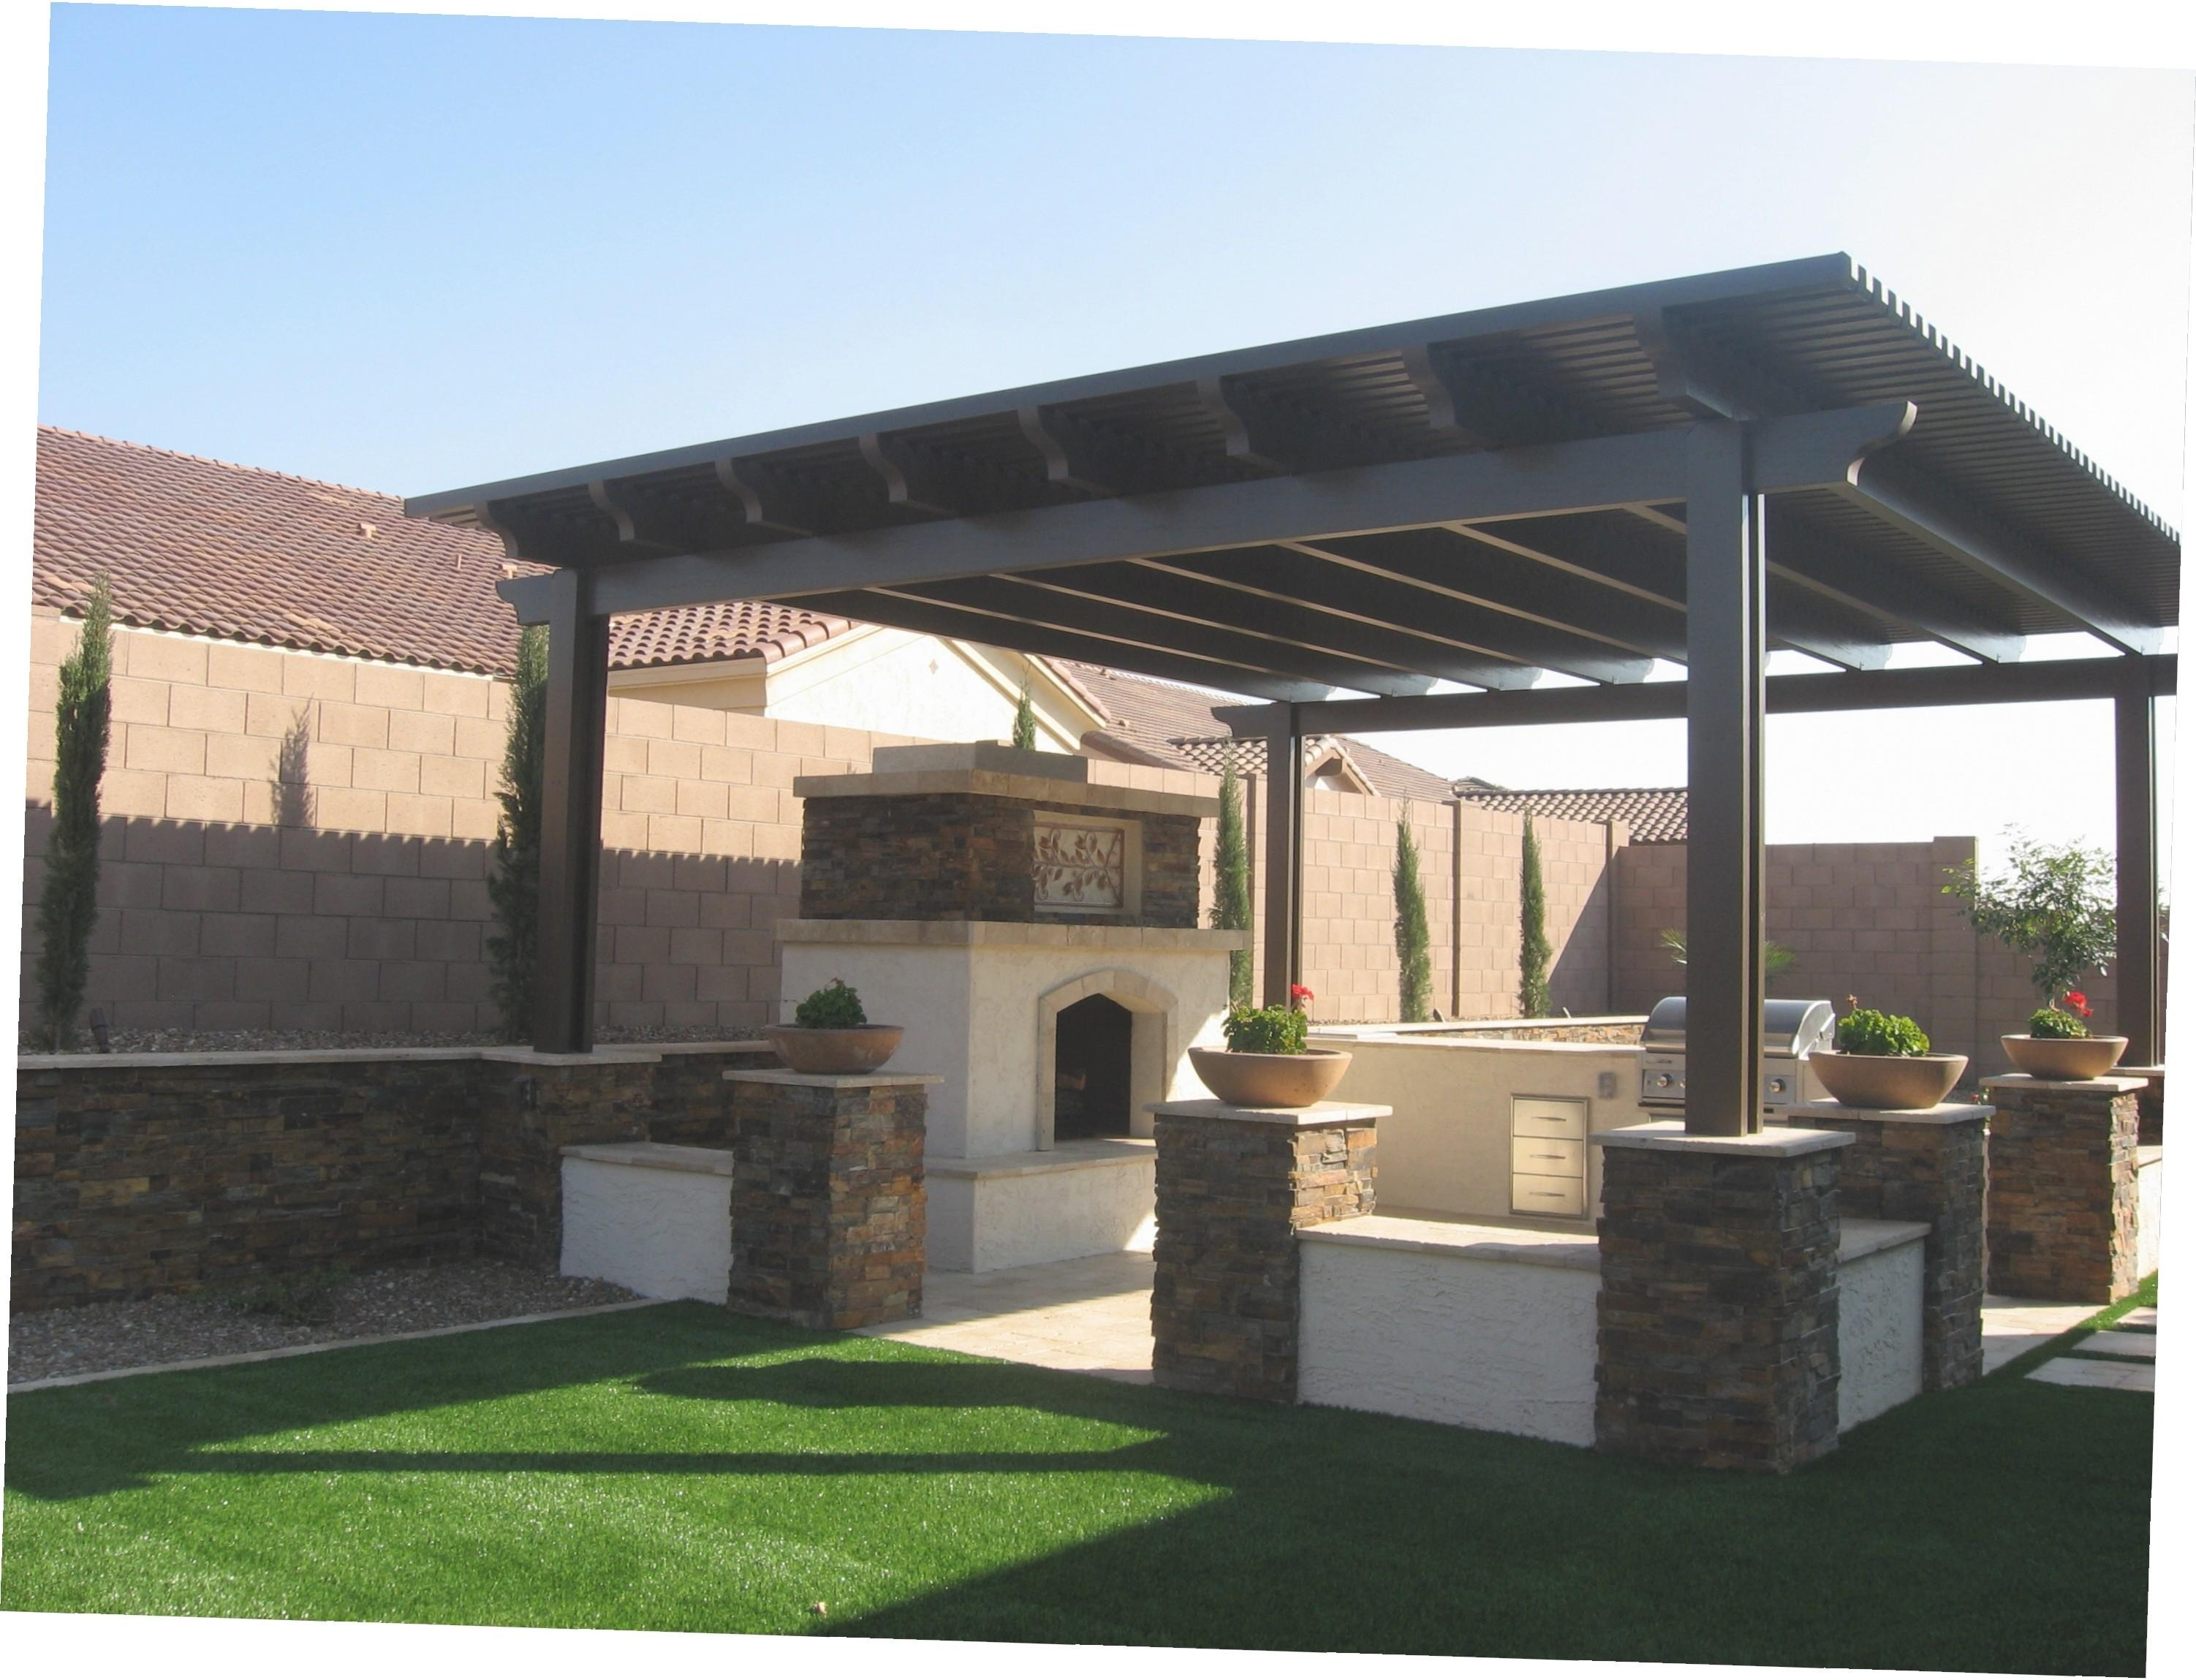 Bbq Gazebo Plans Ideas